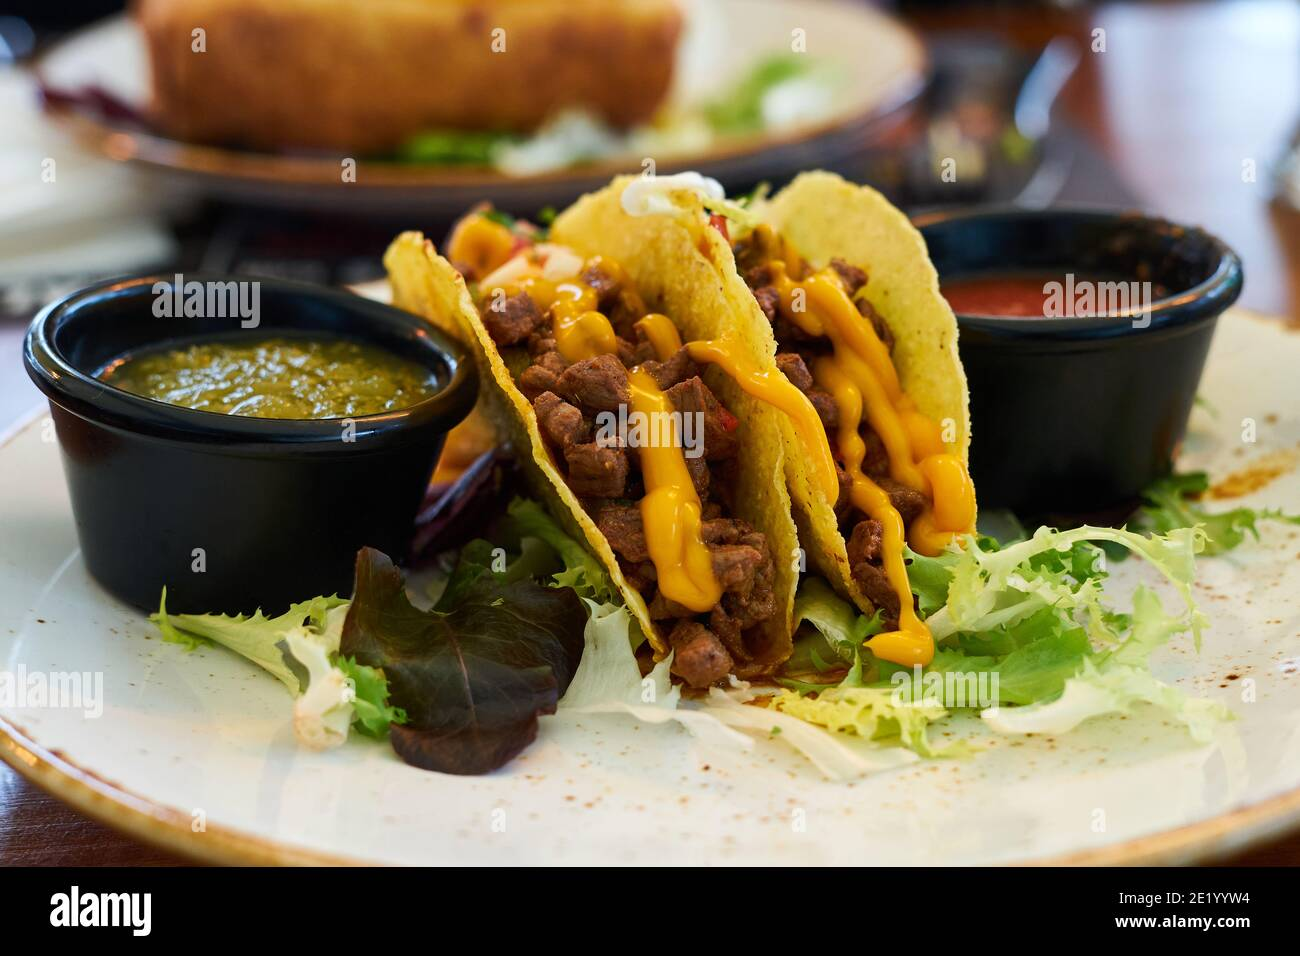 Mexican food, meat tacos with spicy sauces, selective focus Stock Photo